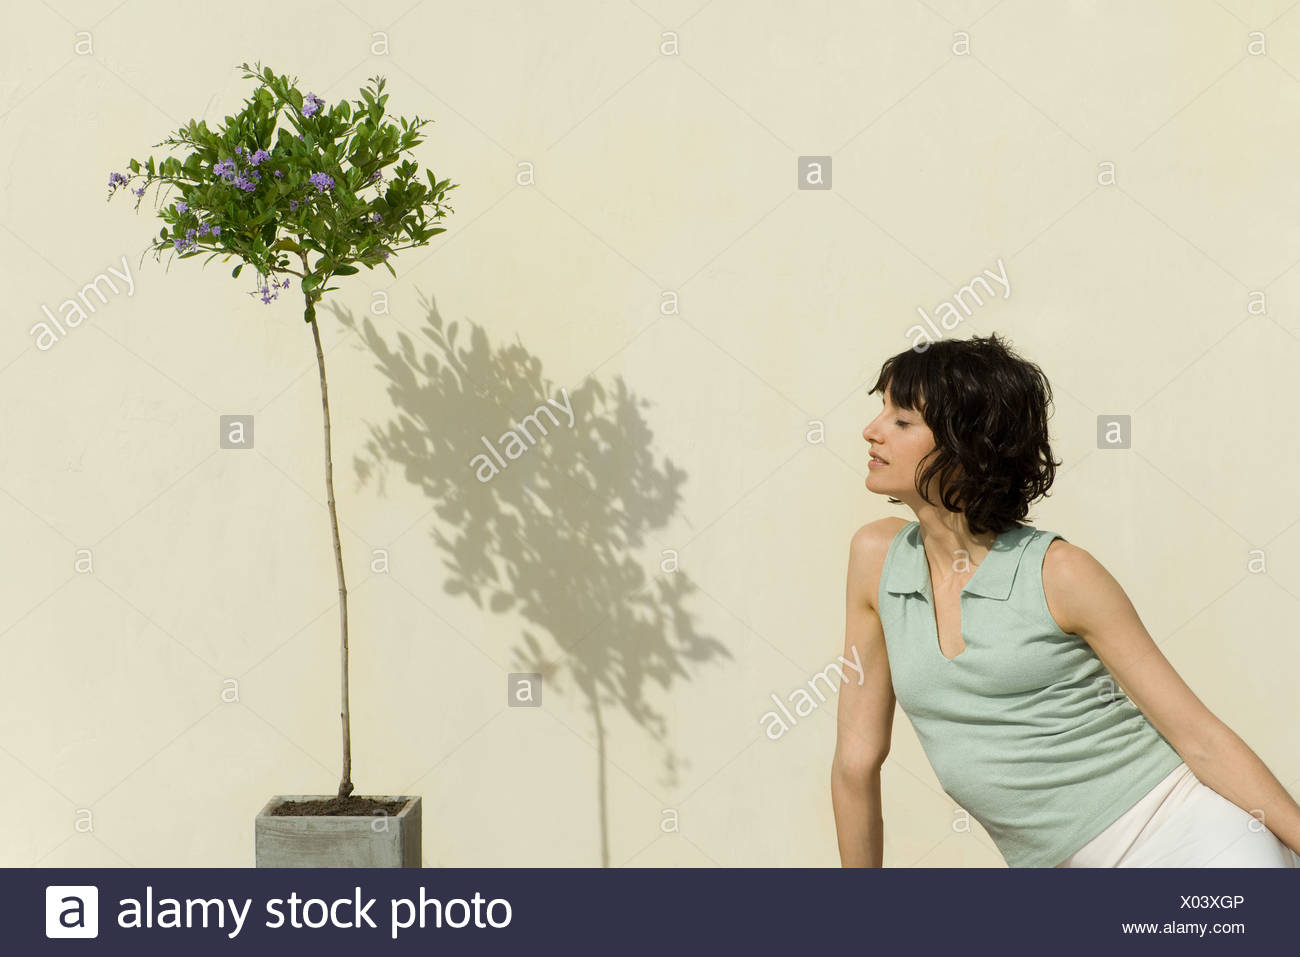 Woman sitting outdoors, leaning toward flowering plant, eyes closed - Stock Image